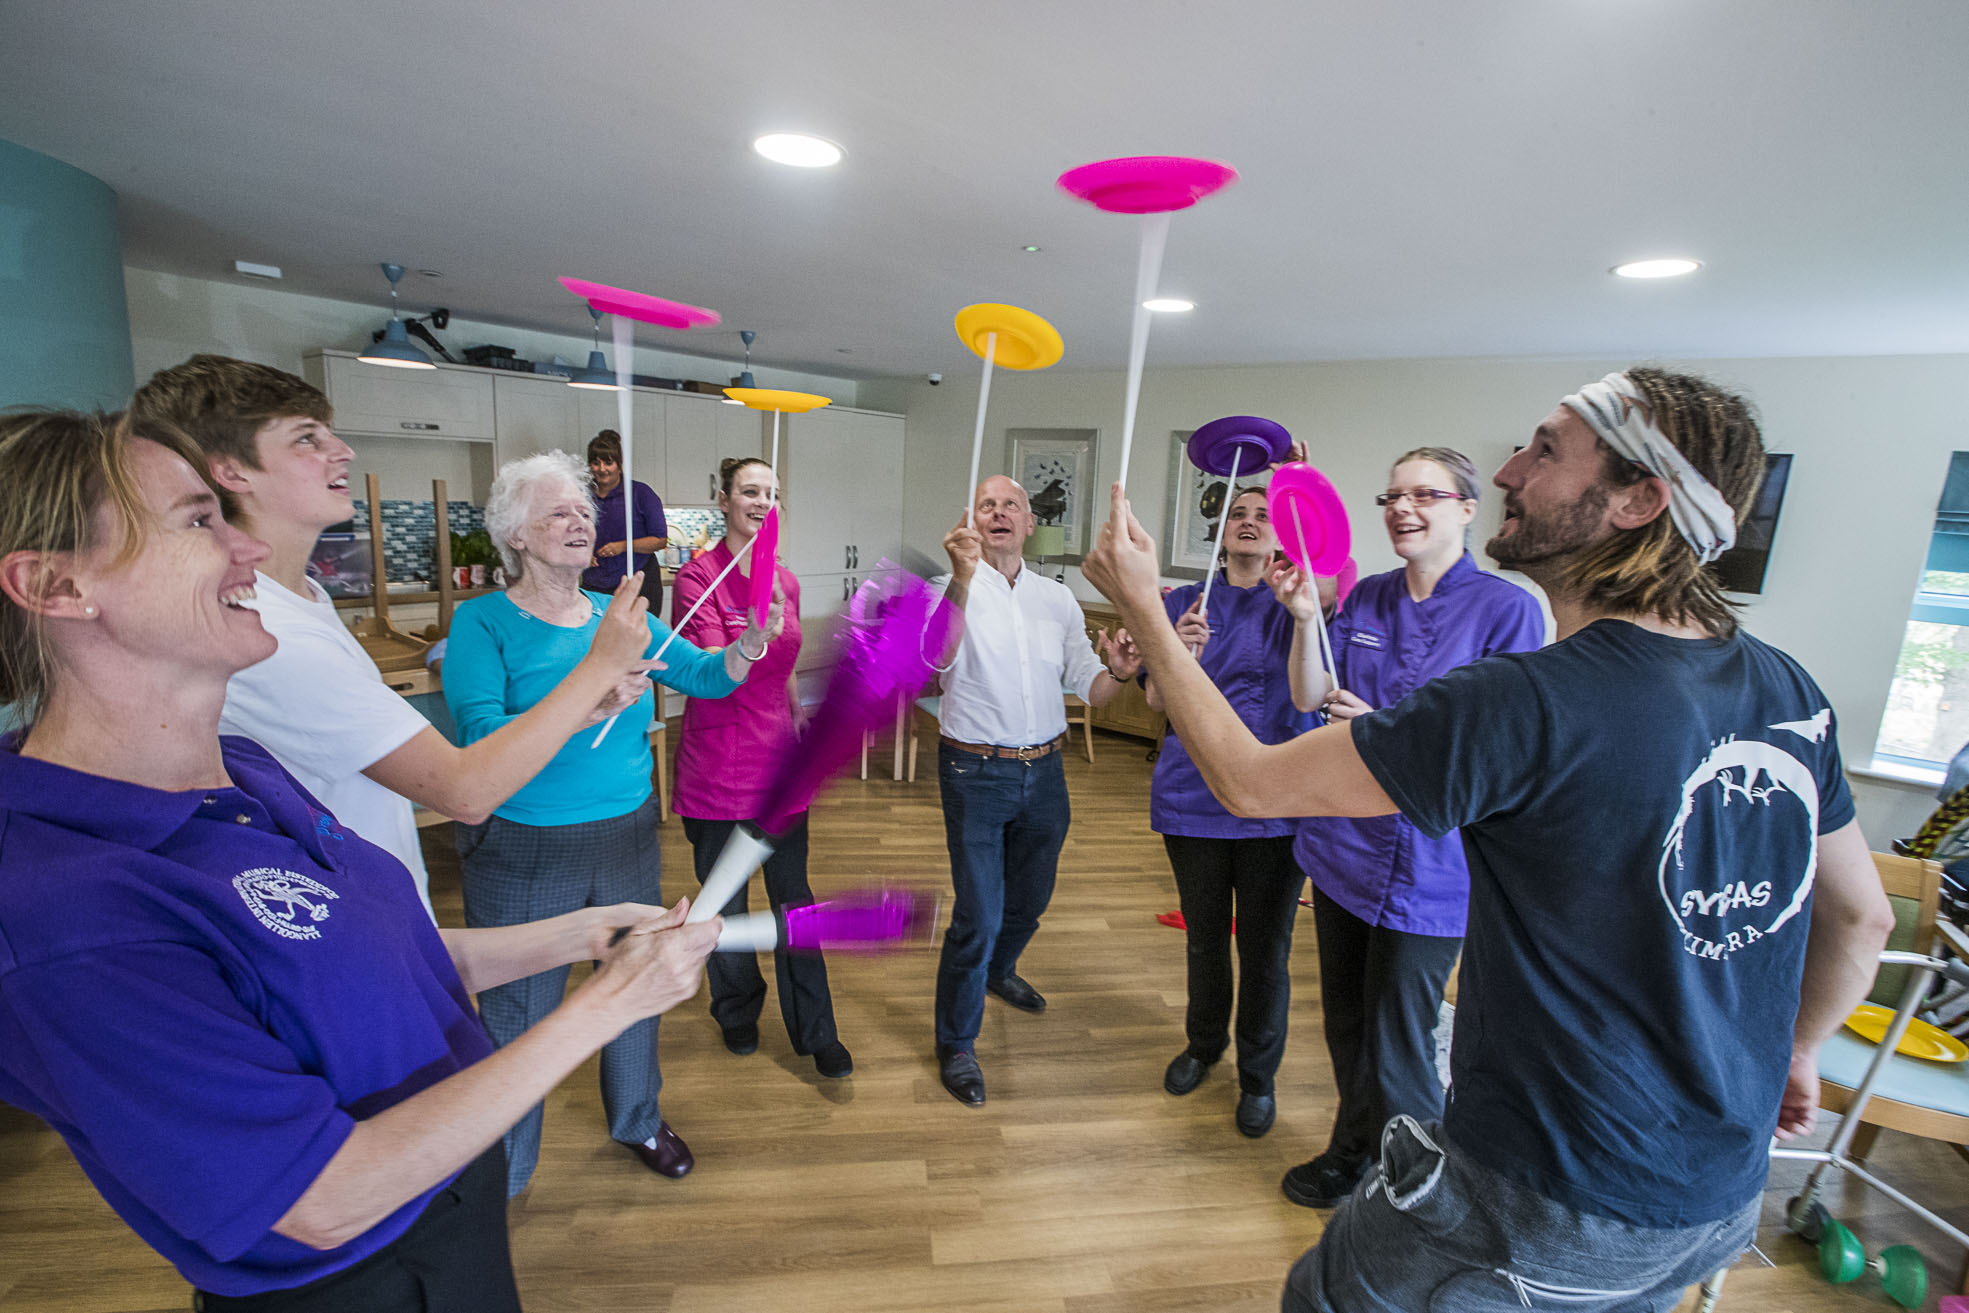 Life's a circus for Caernarfon care home residents and owner Mario